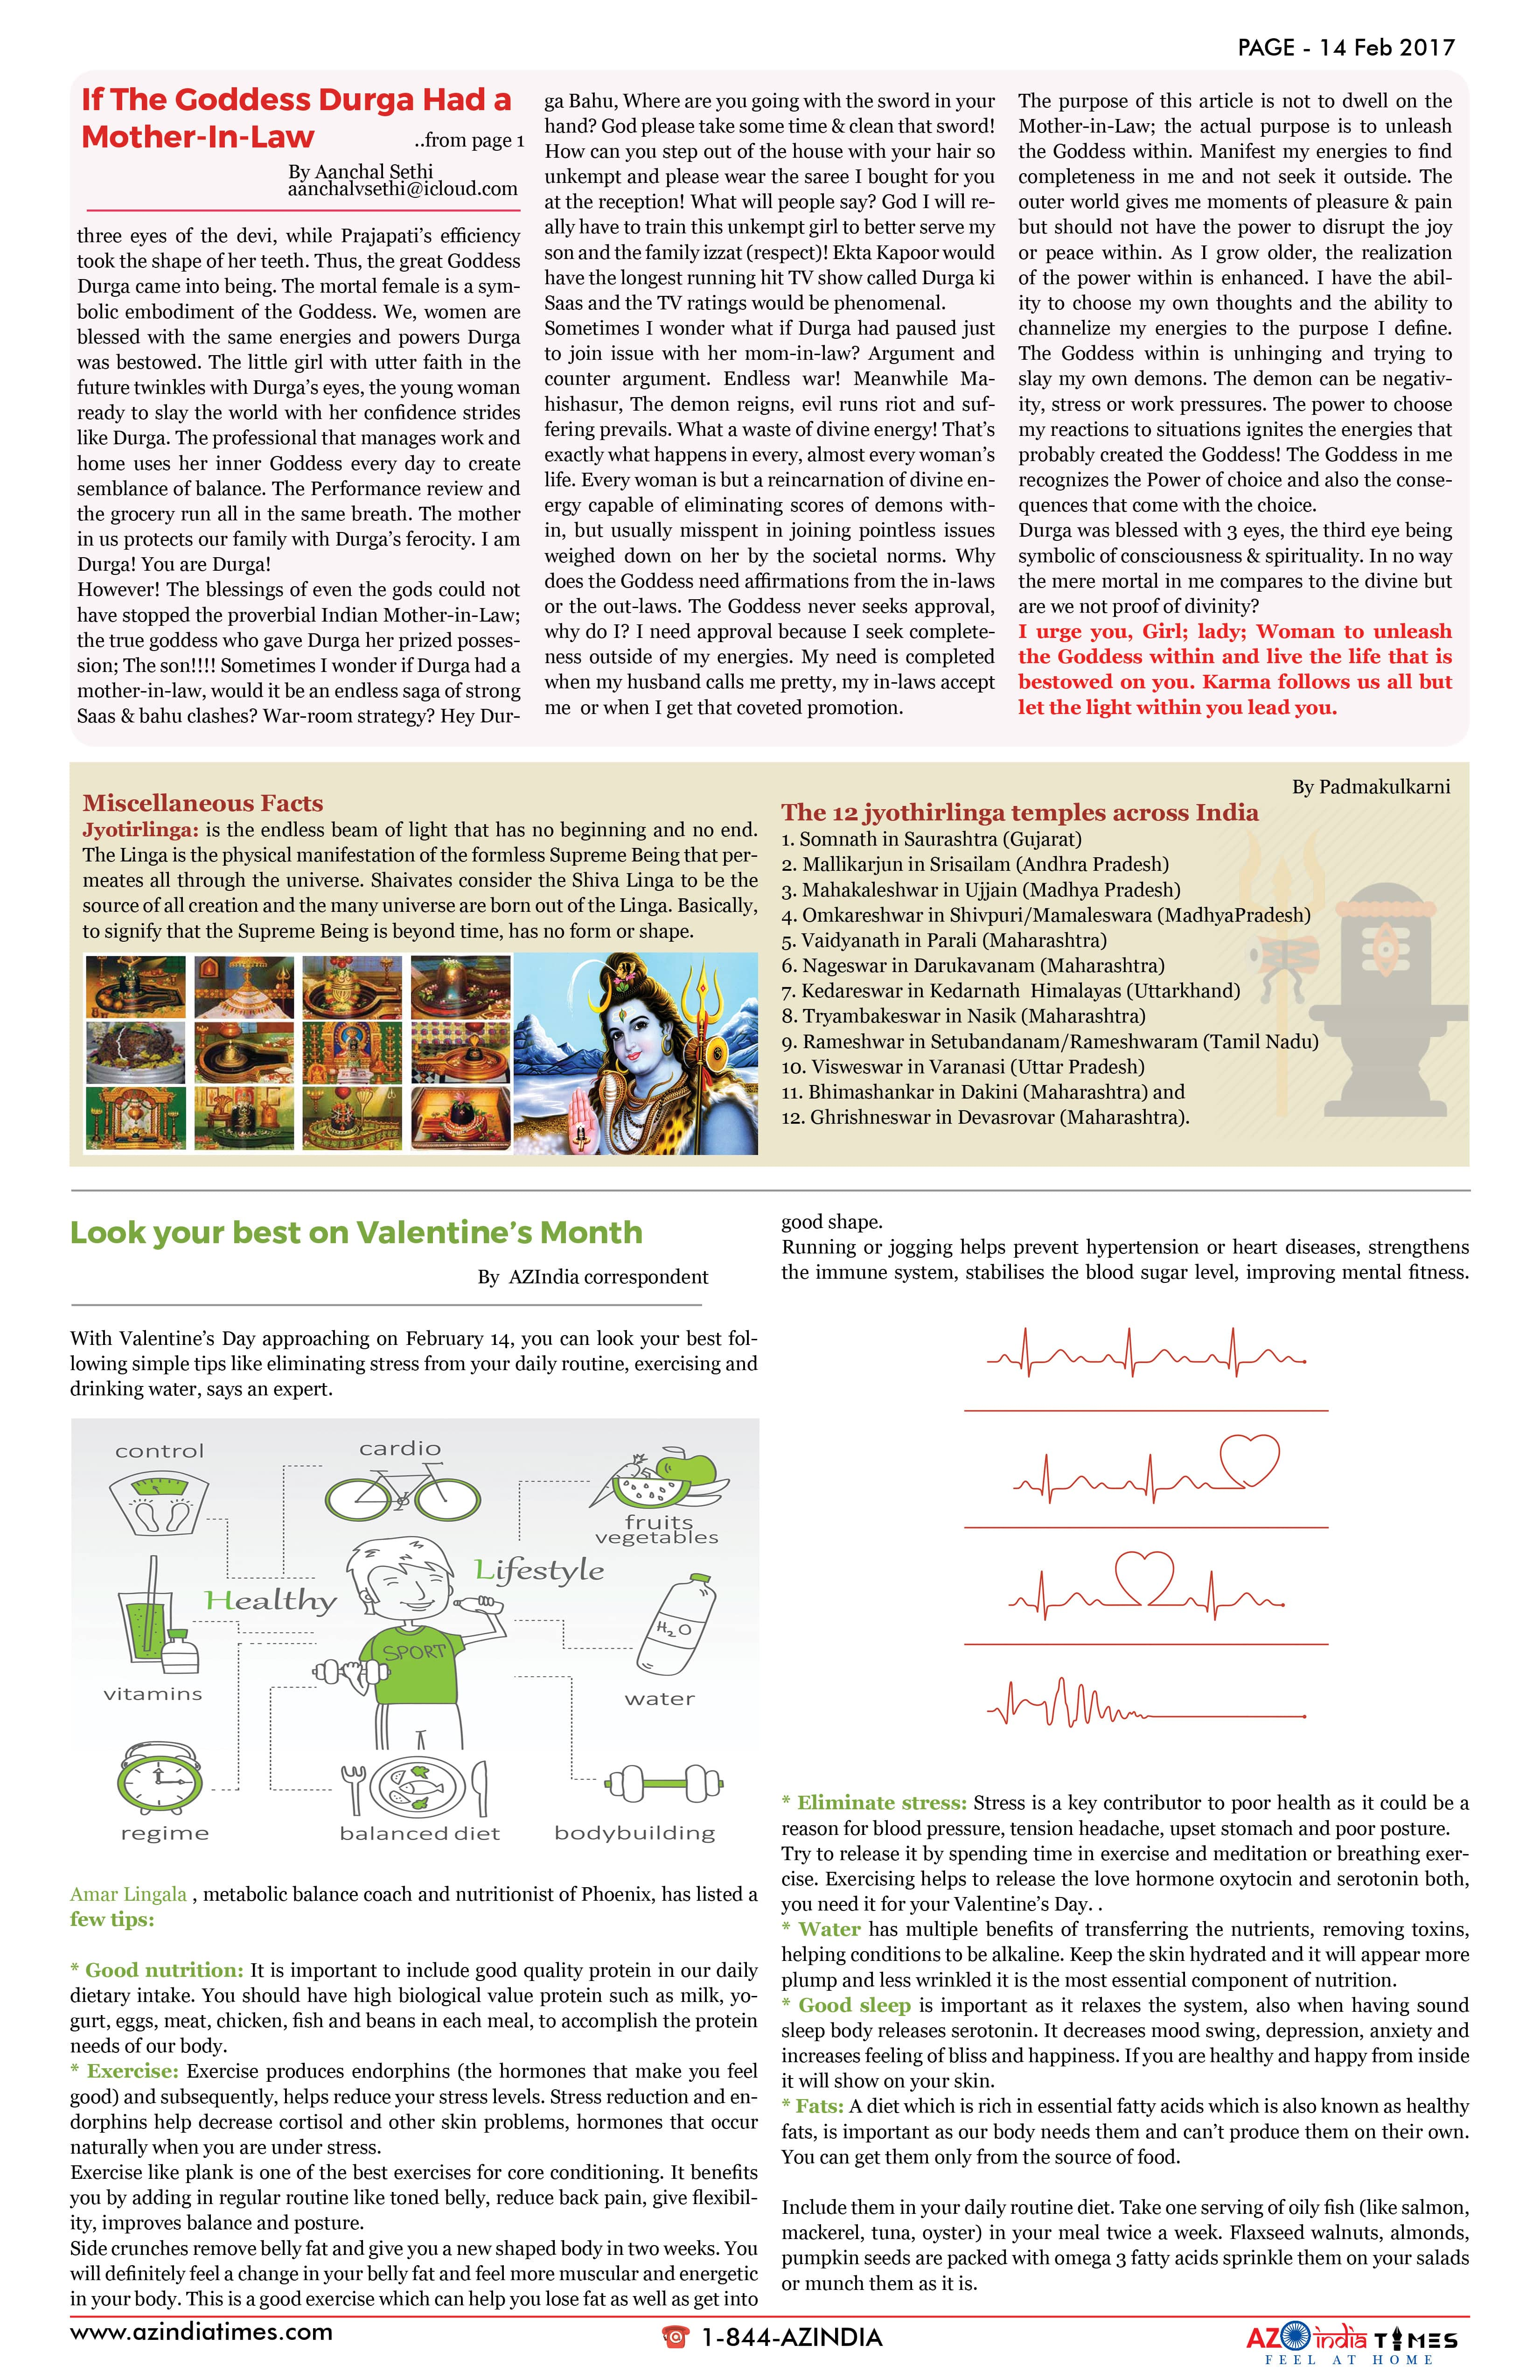 FEBRUARY EDITION-14